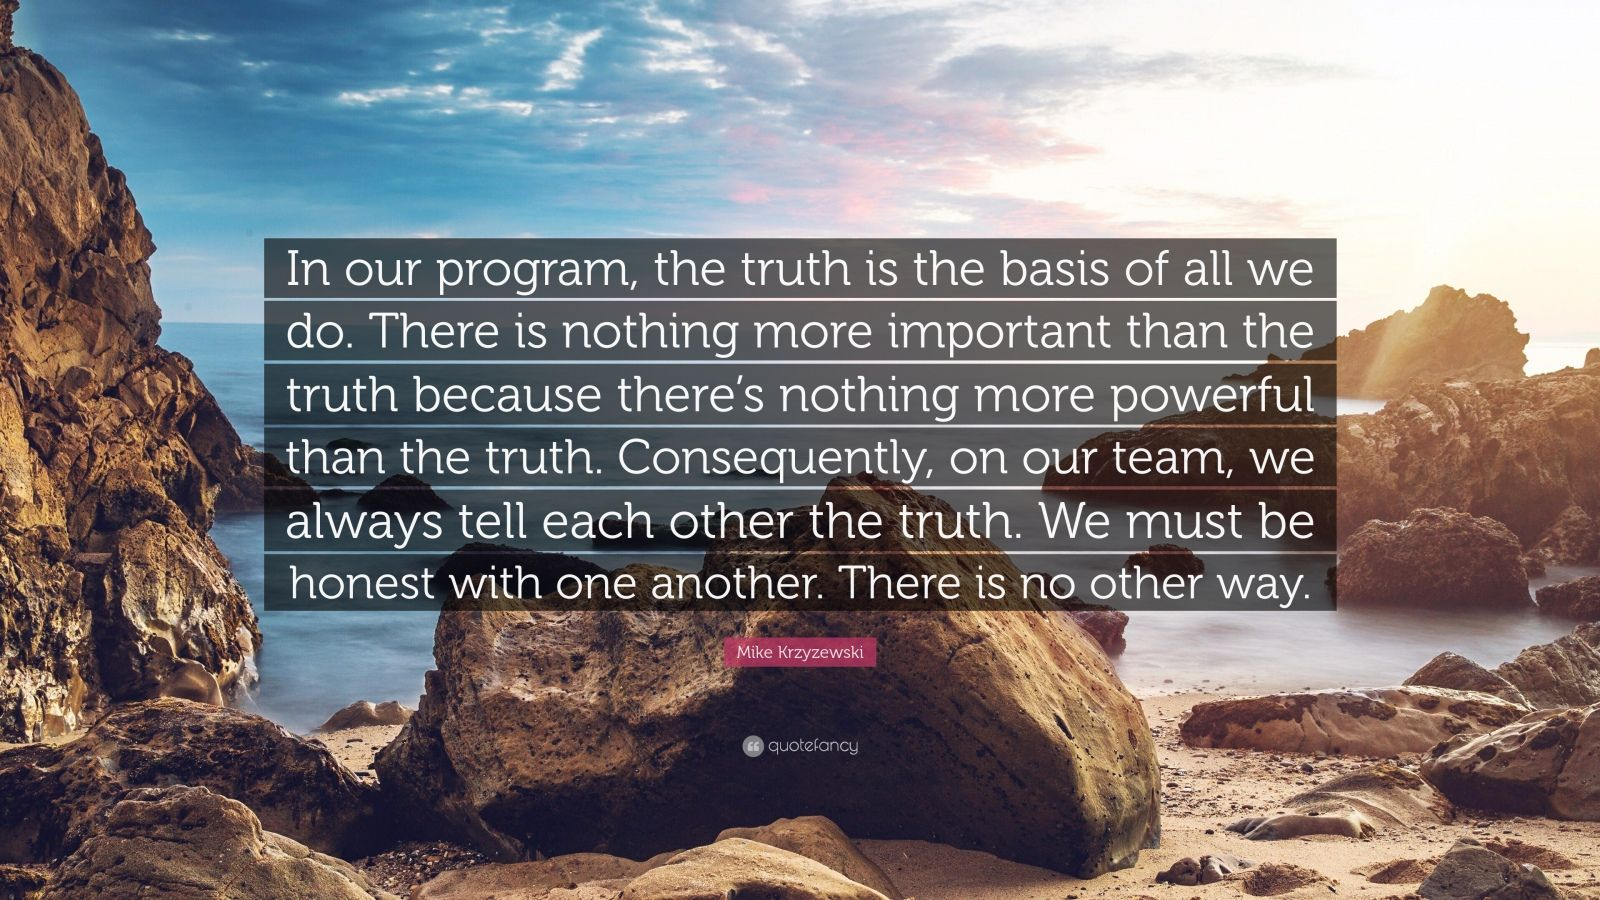 """Mike Krzyzewski Quote: """"In our program, the truth is the basis of all we do. There is nothing more important than the truth because there's nothing more powerful than the truth. Consequently, on our team, we always tell each other the truth. We must be honest with one another. There is no other way."""""""